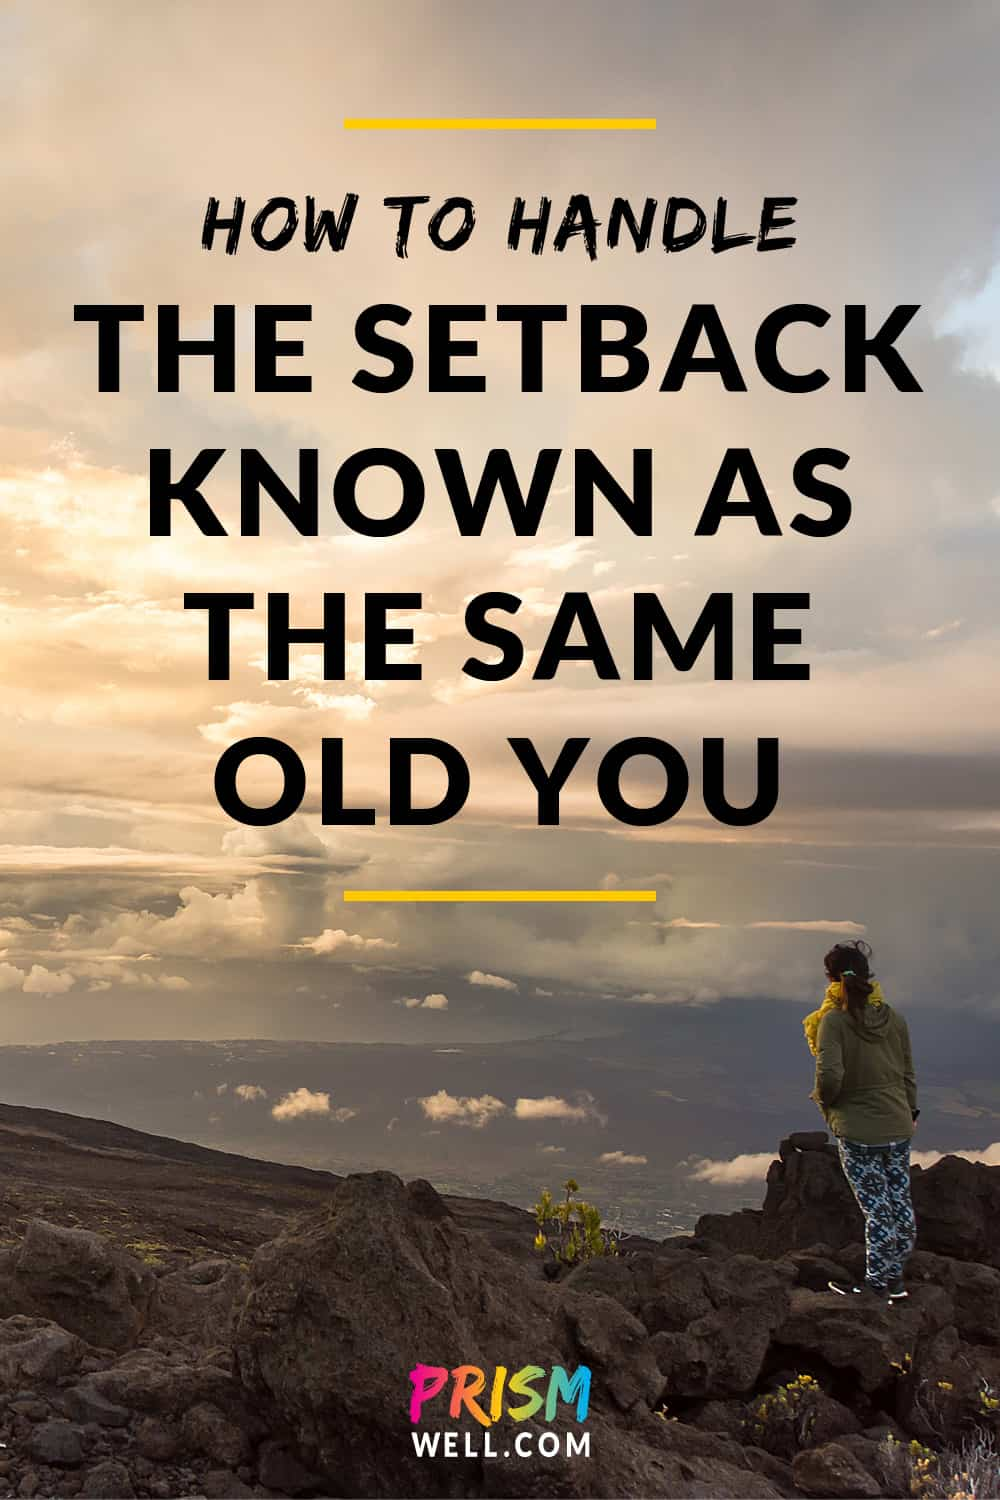 The old you will show up again, and it will feel like the most discouraging setback ever. The real question is,